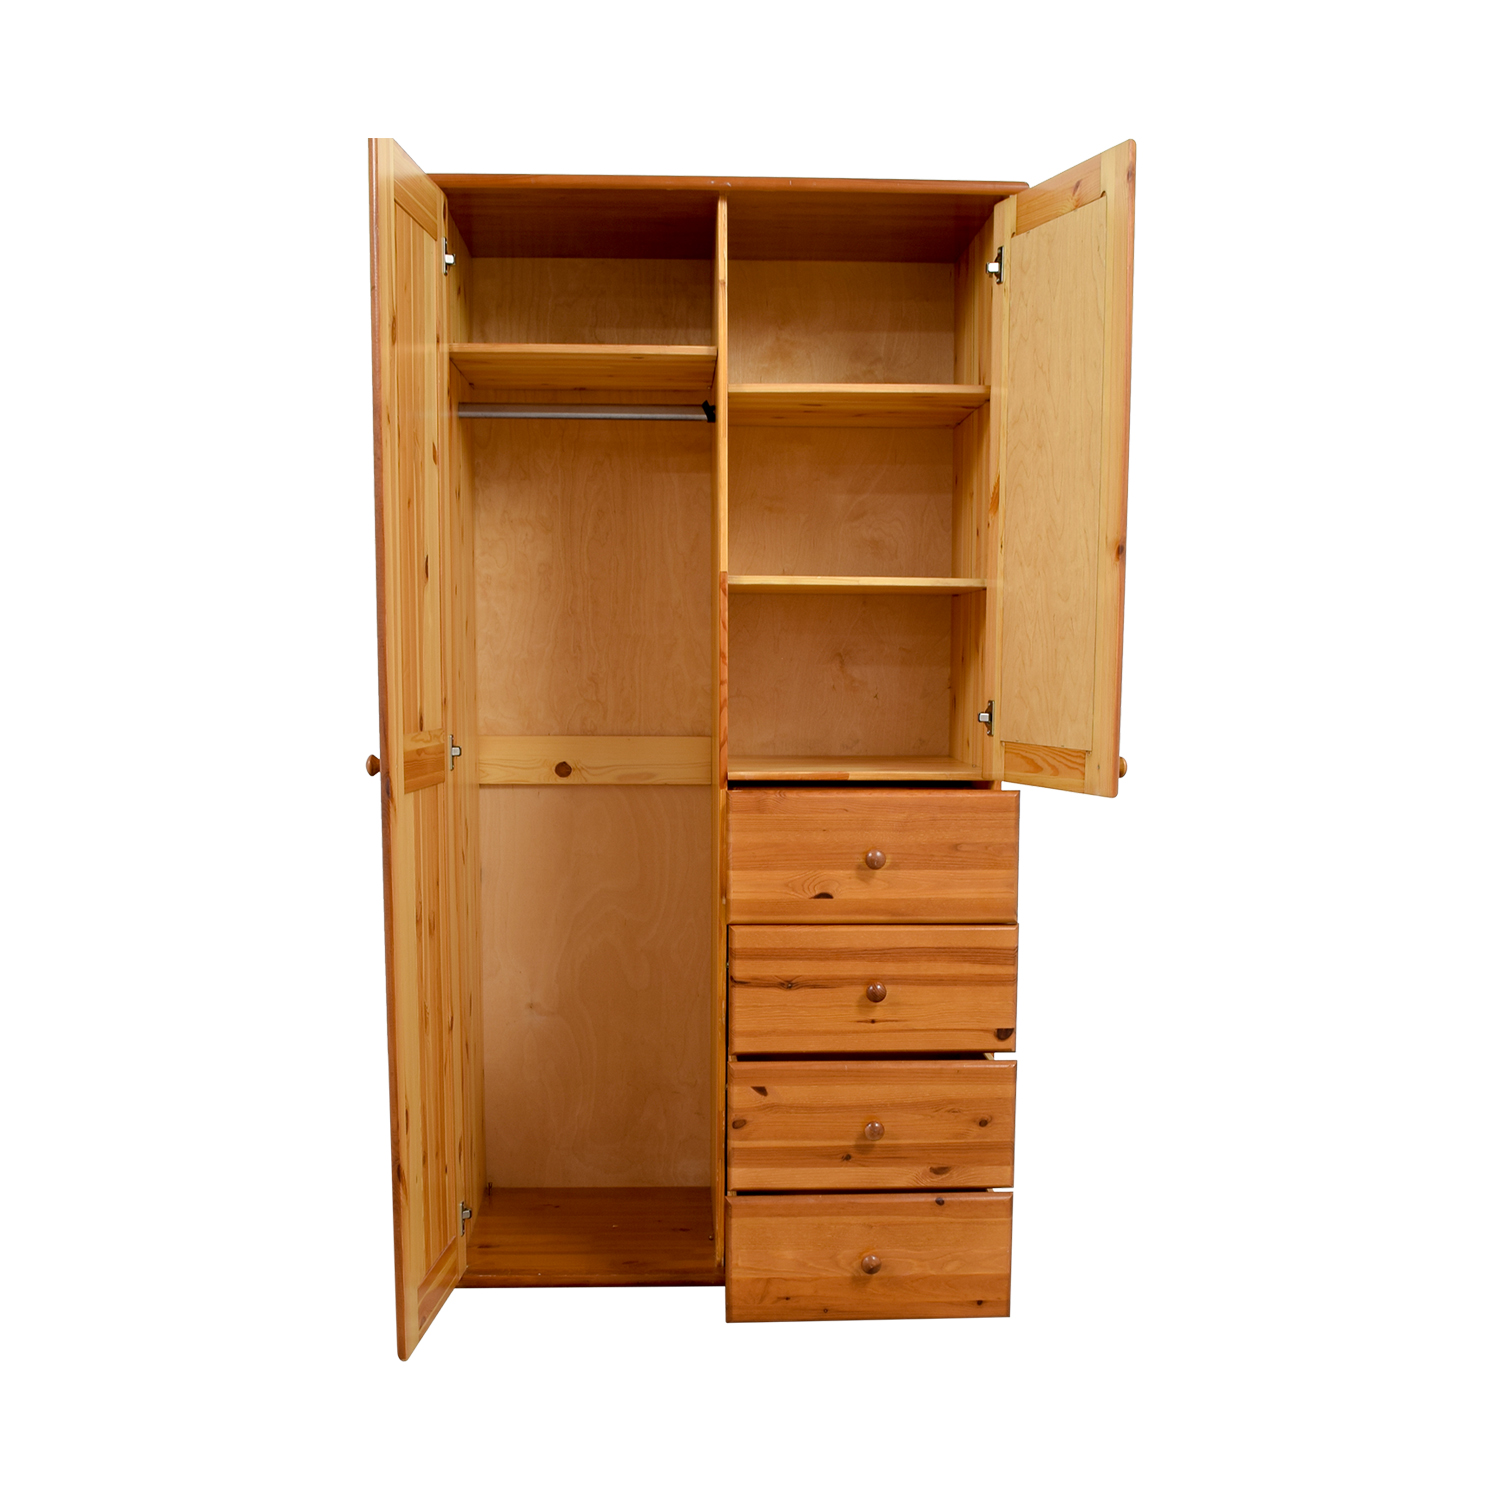 Wood Armoire with Rack Drawers and Shelves / Wardrobes & Armoires